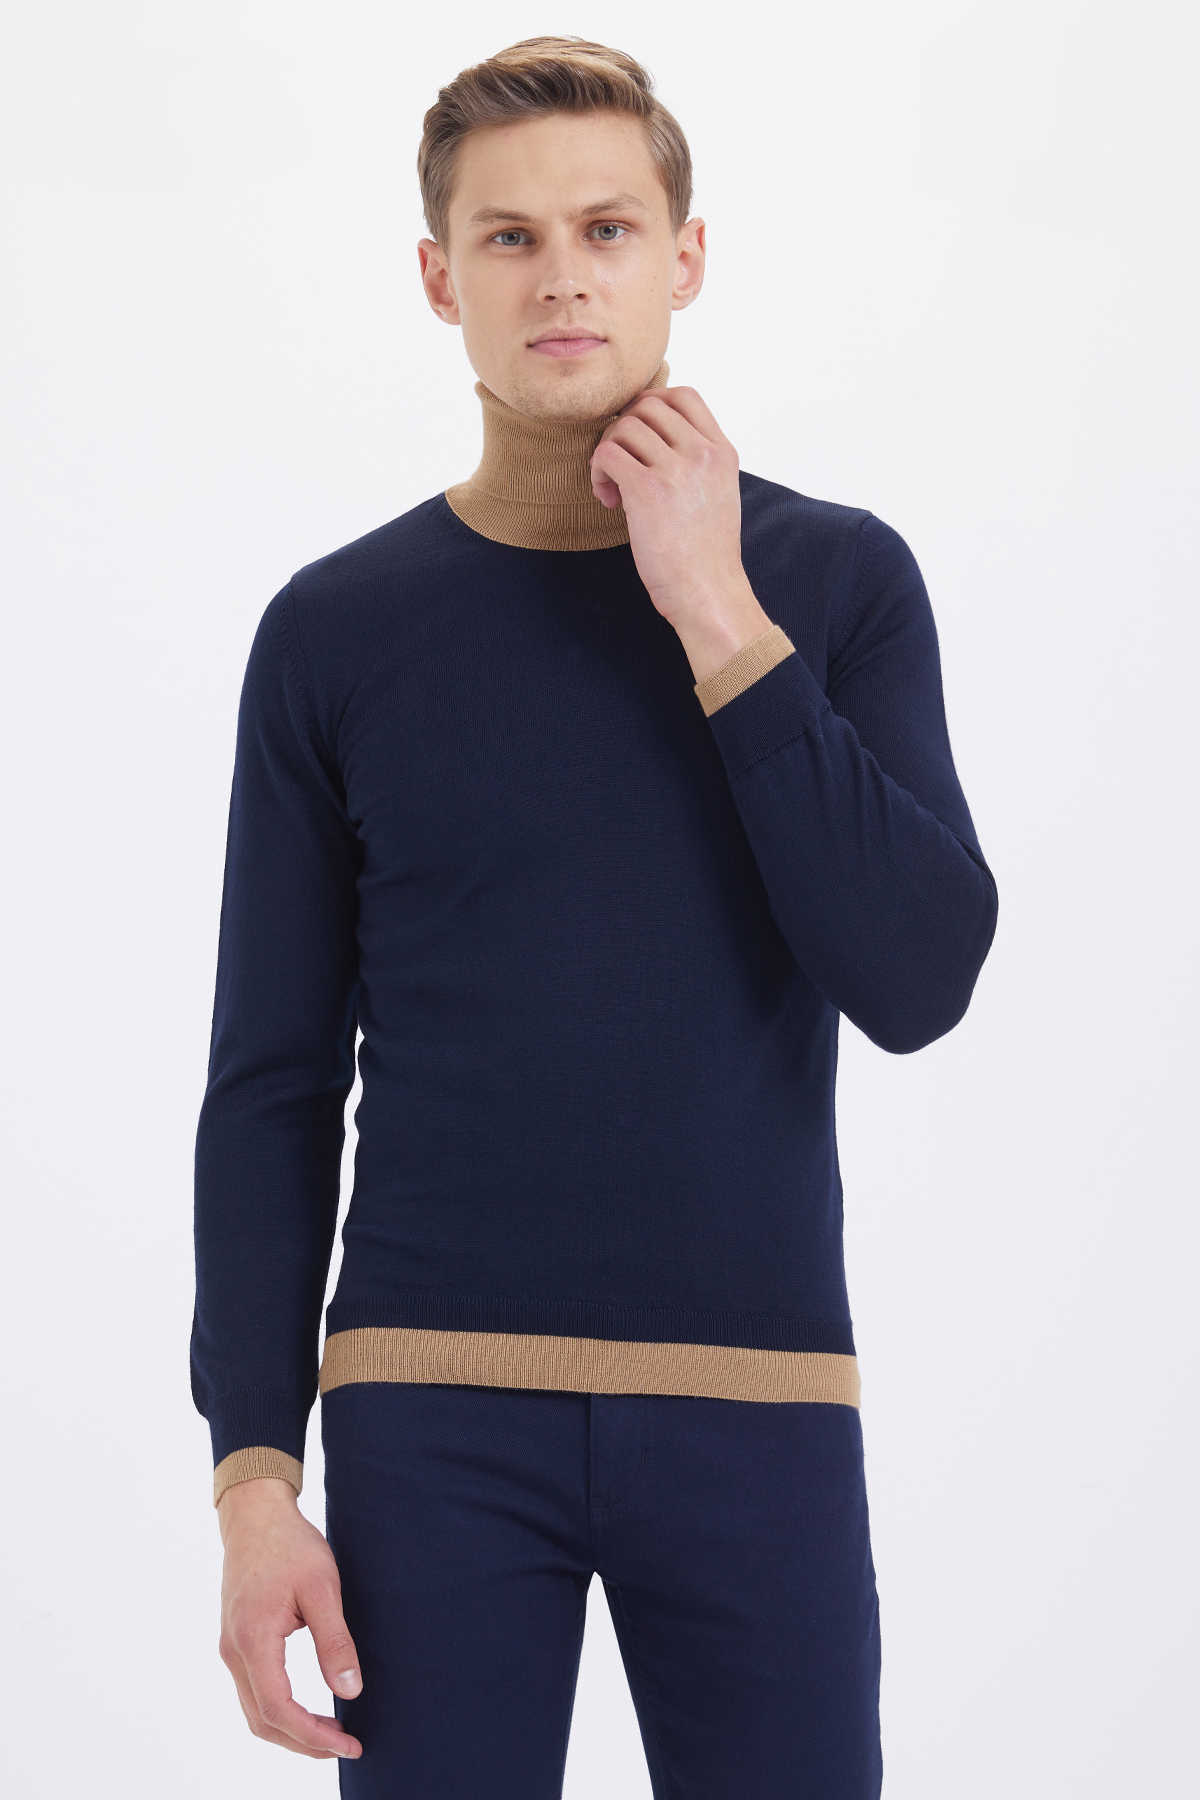 HATEM SAYKI - Navy - Camel Sweater